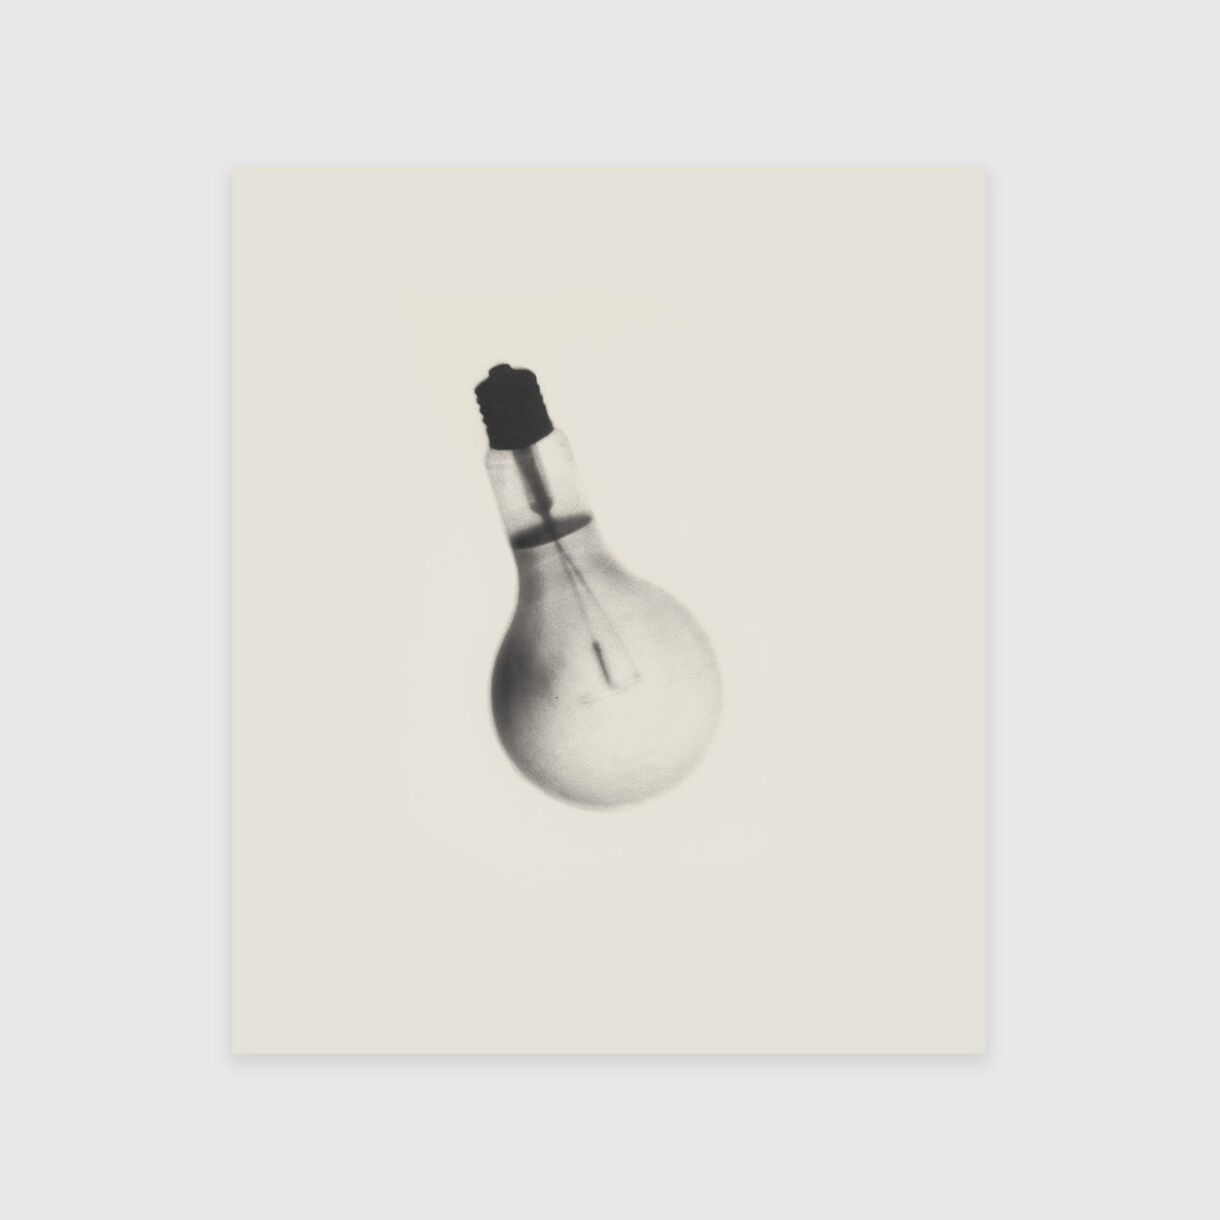 Spent Bulb Exposed by a Live One, Cornelia Parker